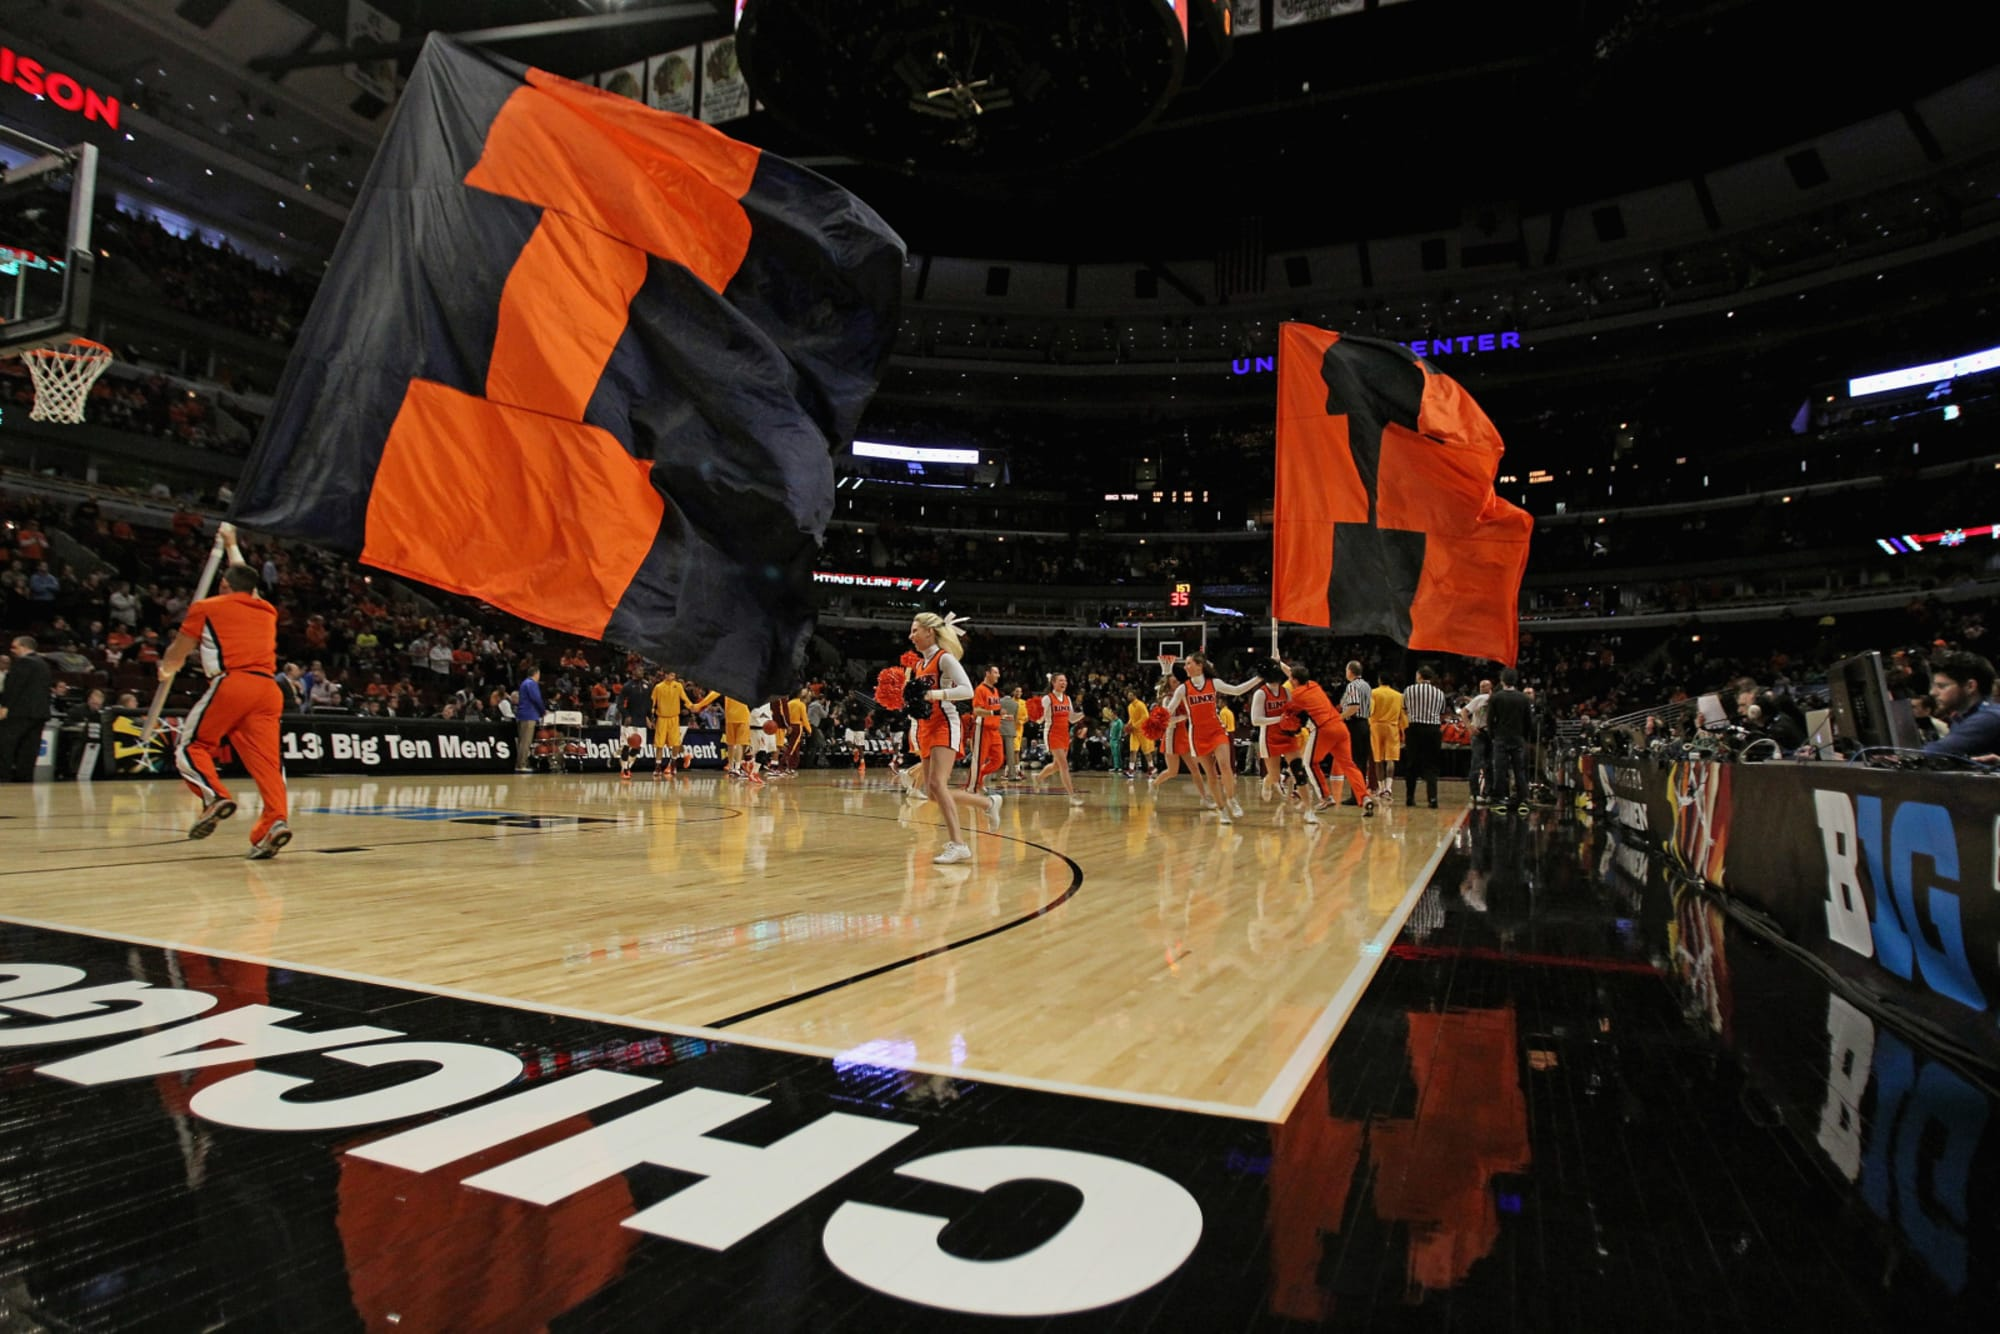 Illinois Basketball: Illini set to play in the Jimmy V Classic